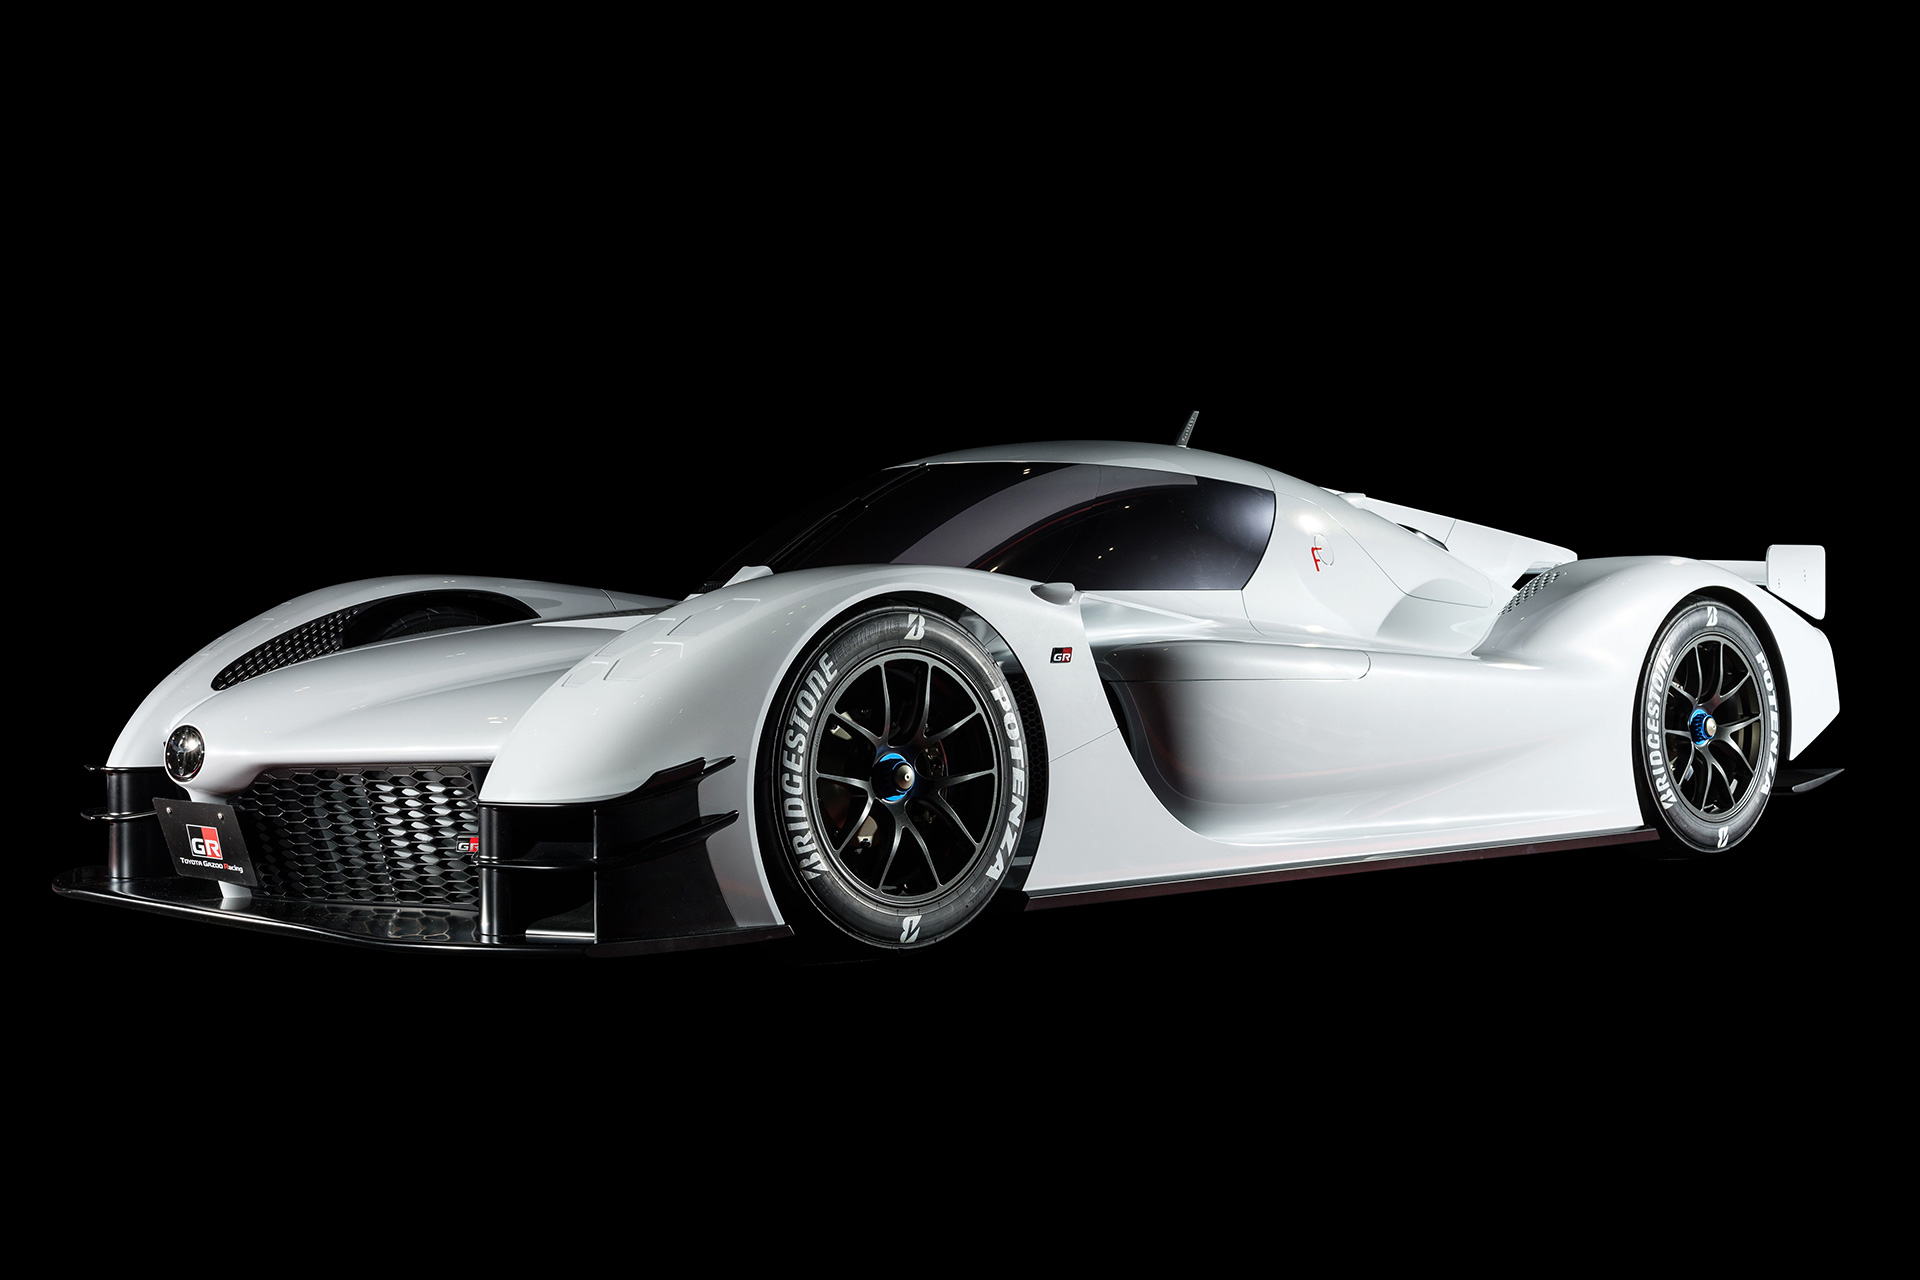 Le Salon Le Mans Toyota Confirms Hypercar Development Likely Based On Its Le Mans